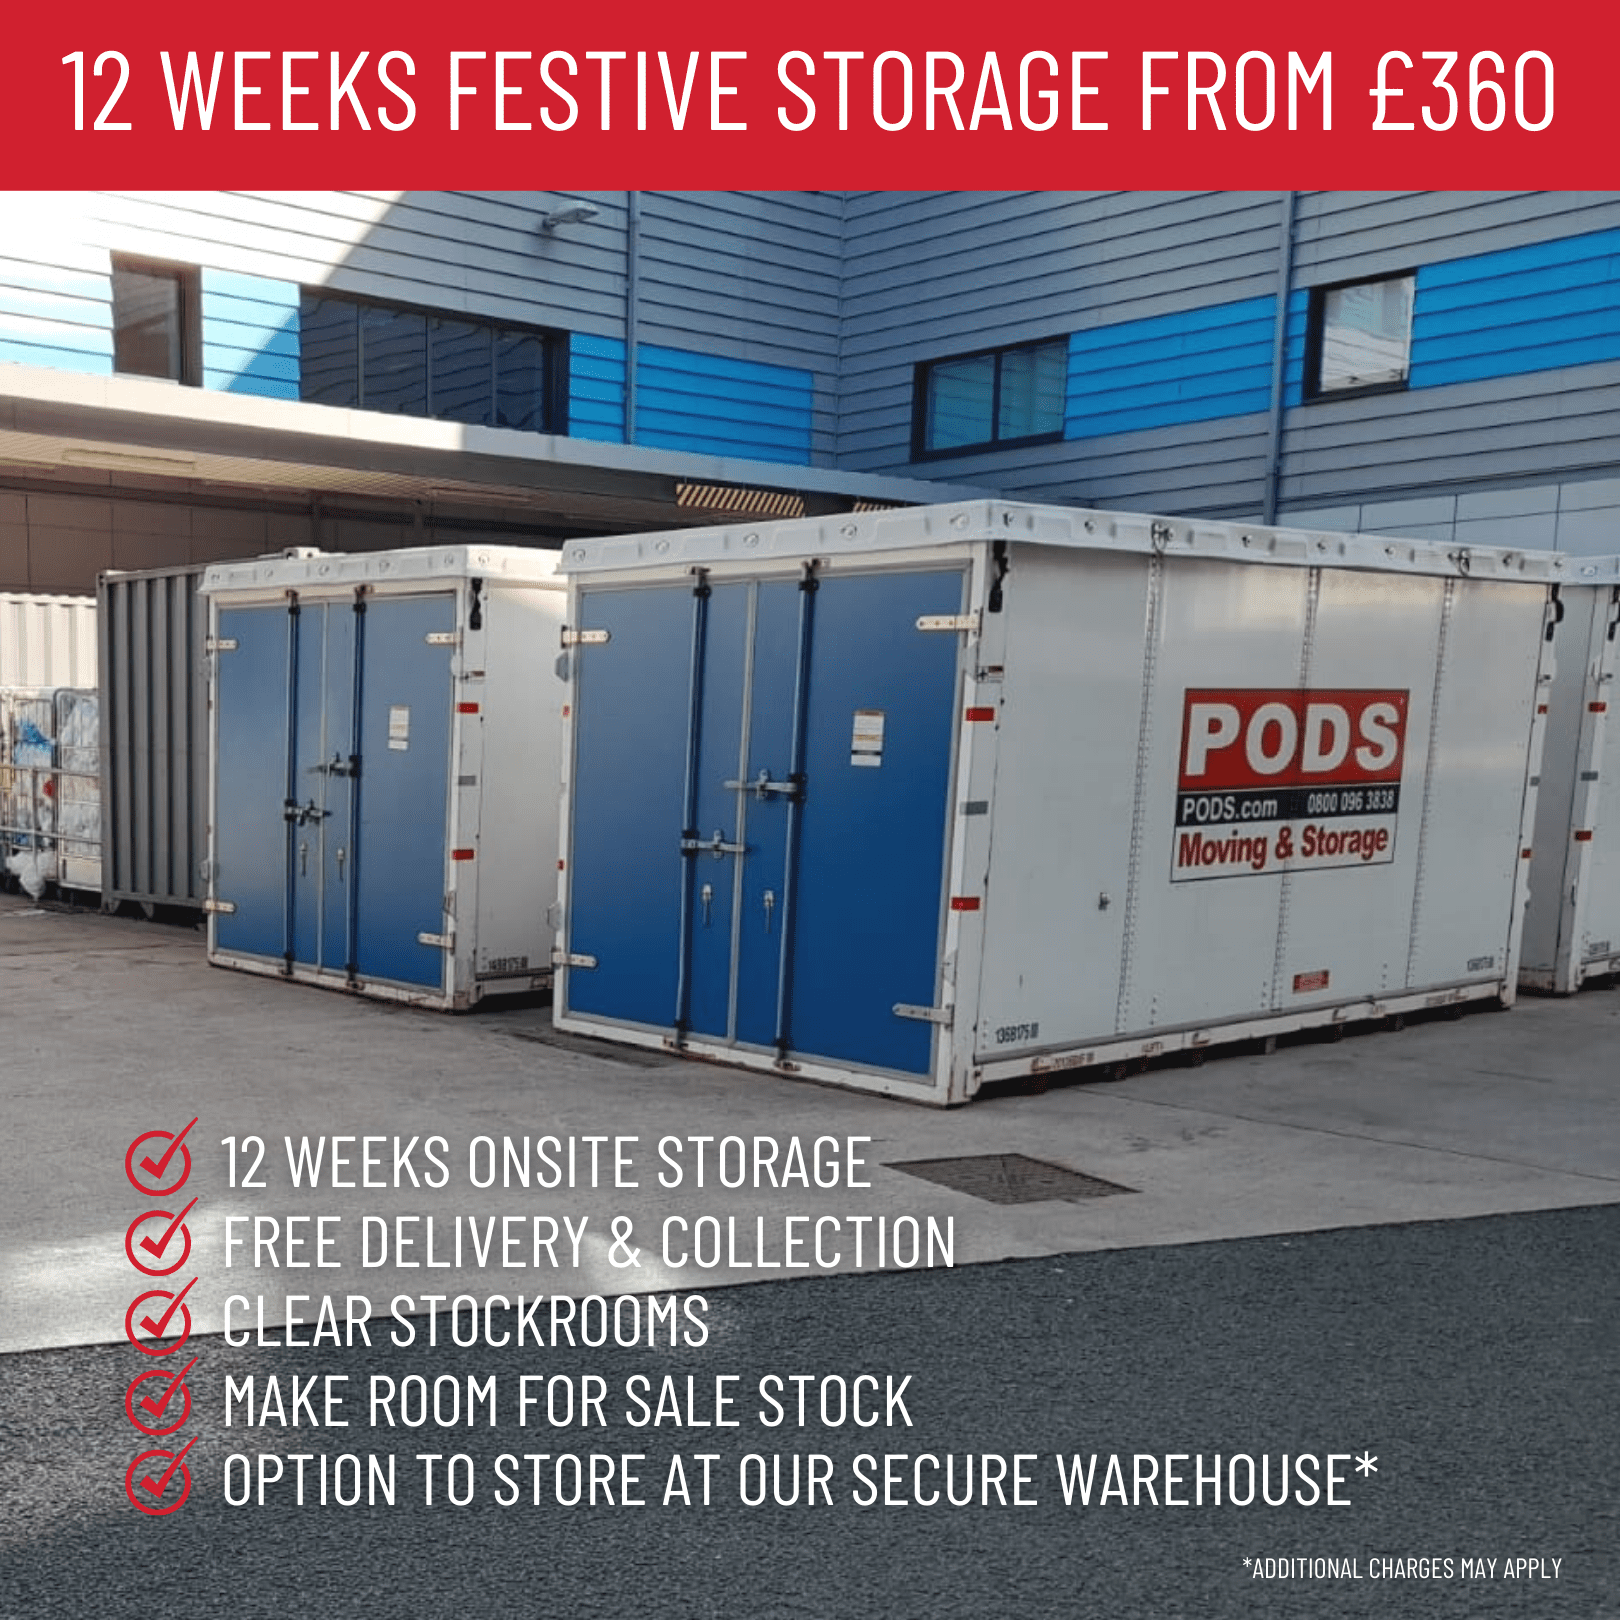 Xmas Retail Storage Offer